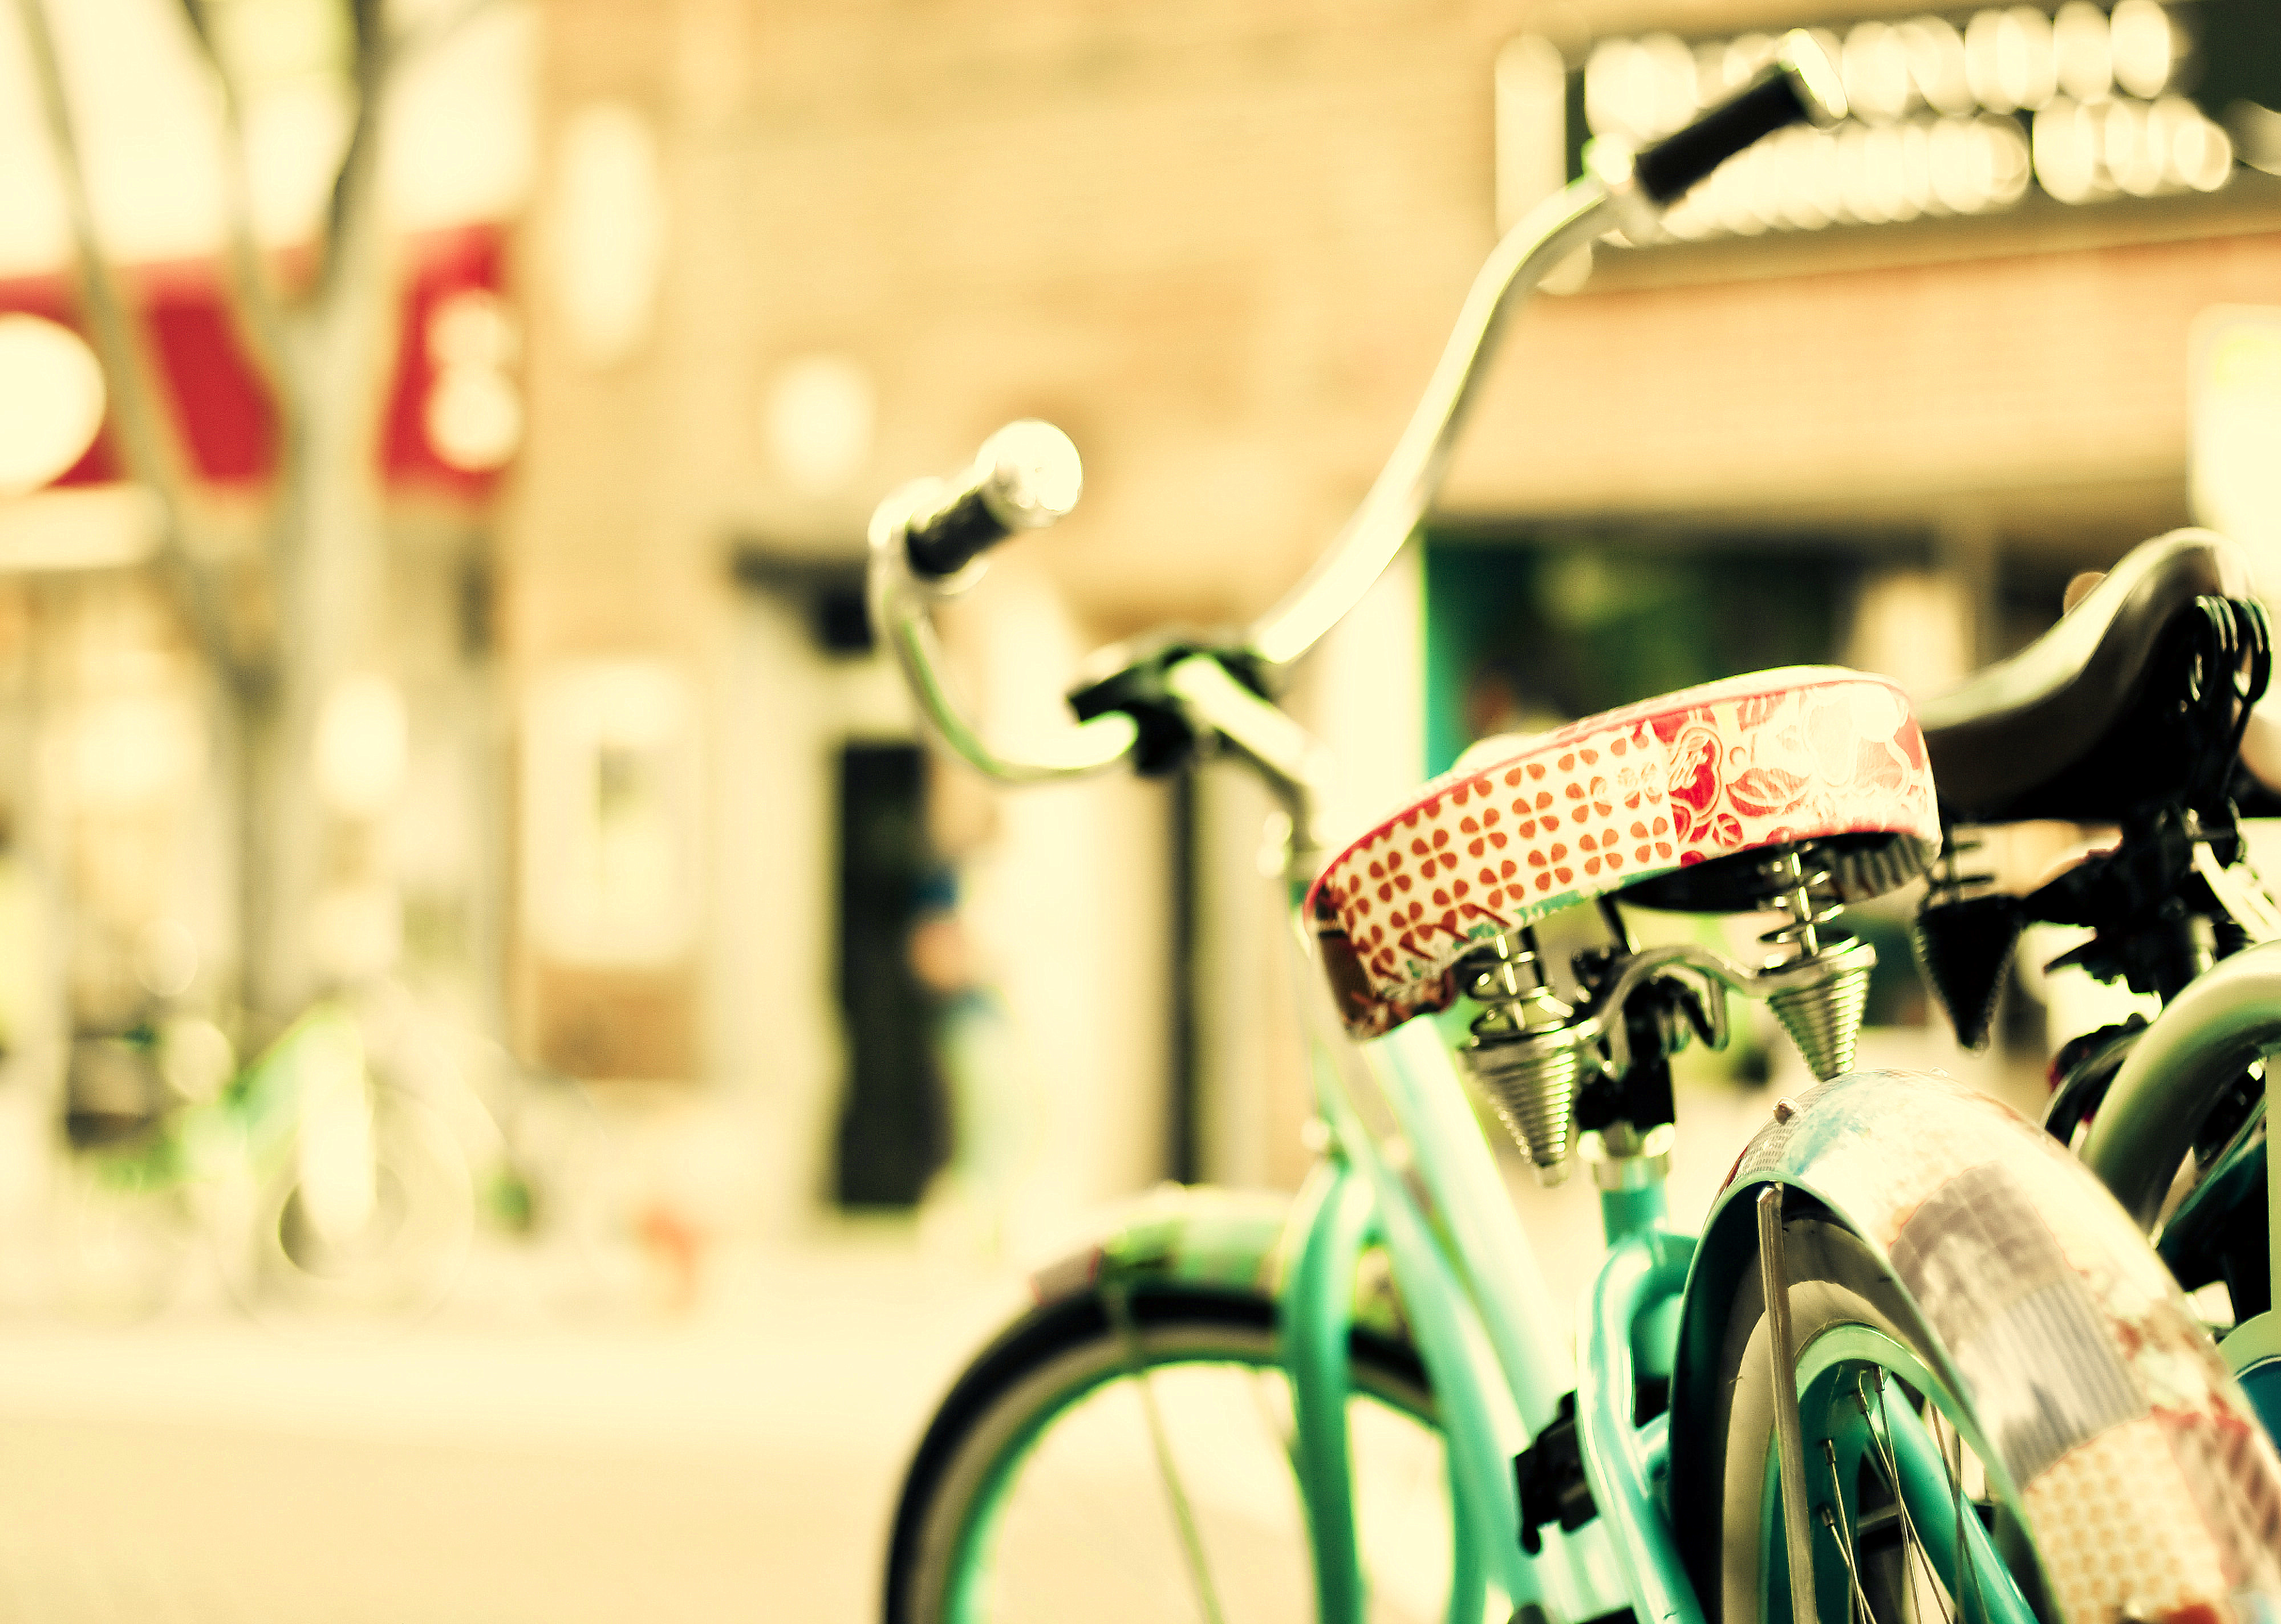 vintage bike photography images amp pictures   becuo